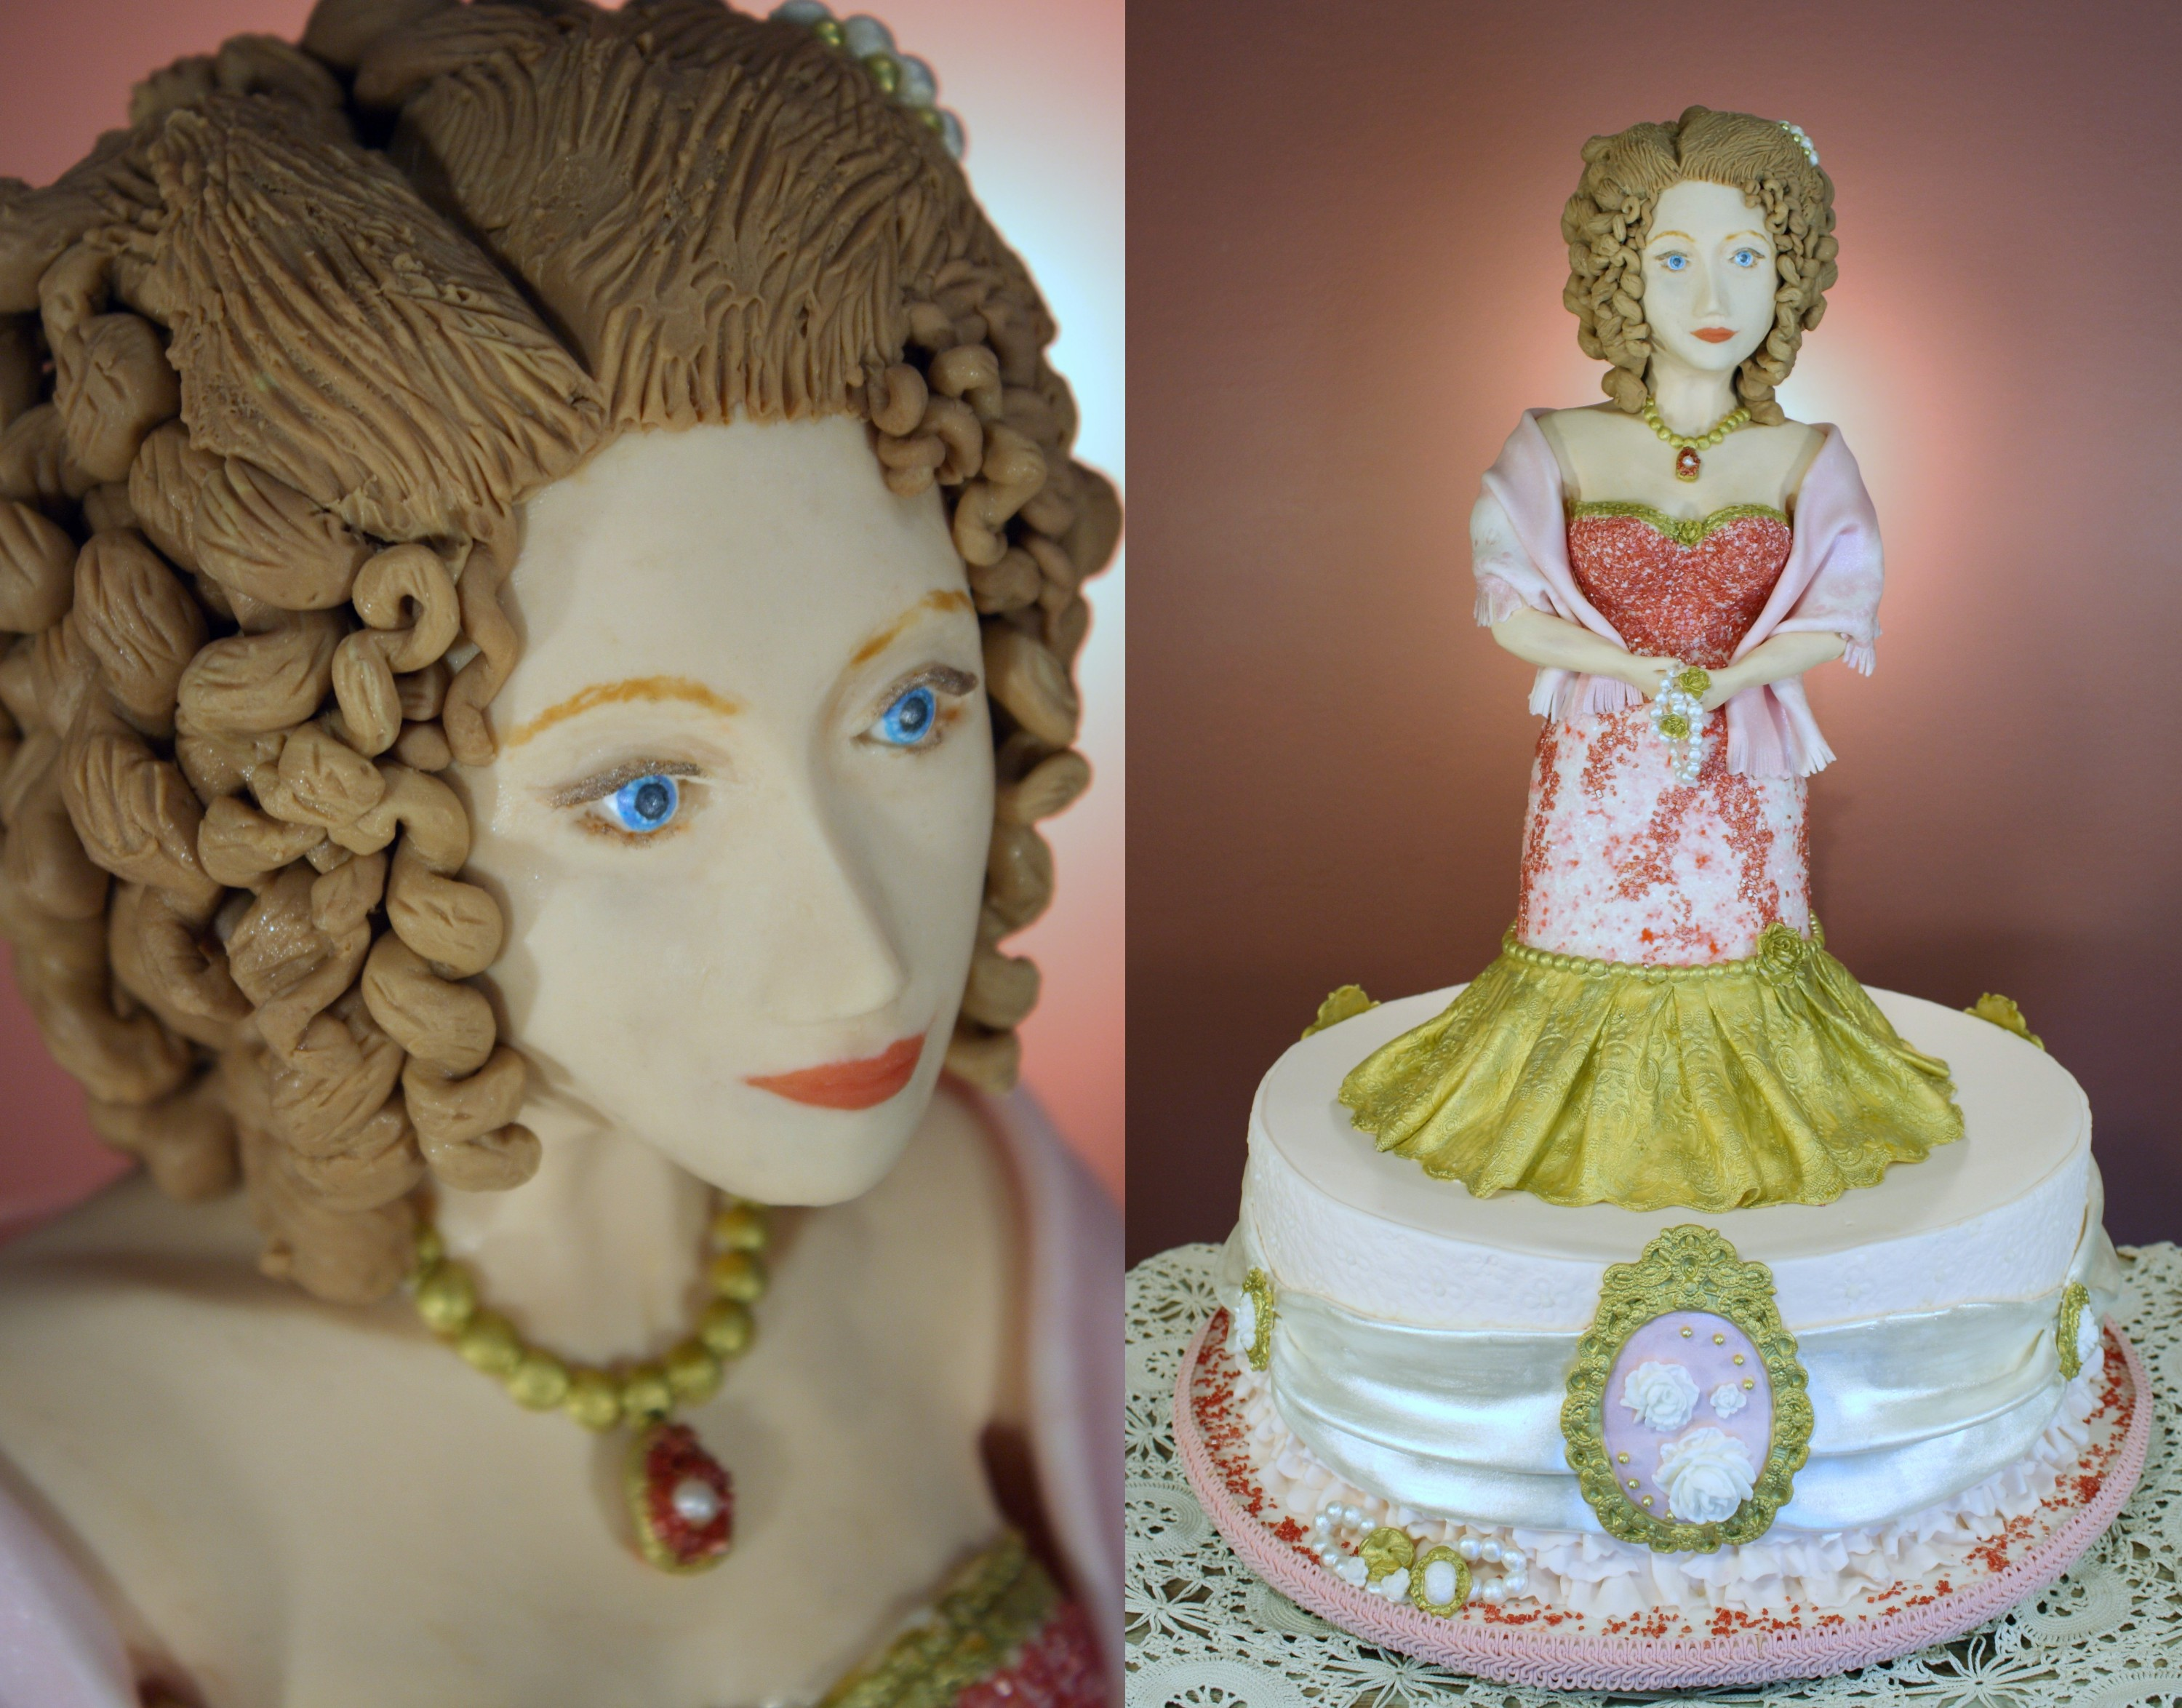 The Lady Cake